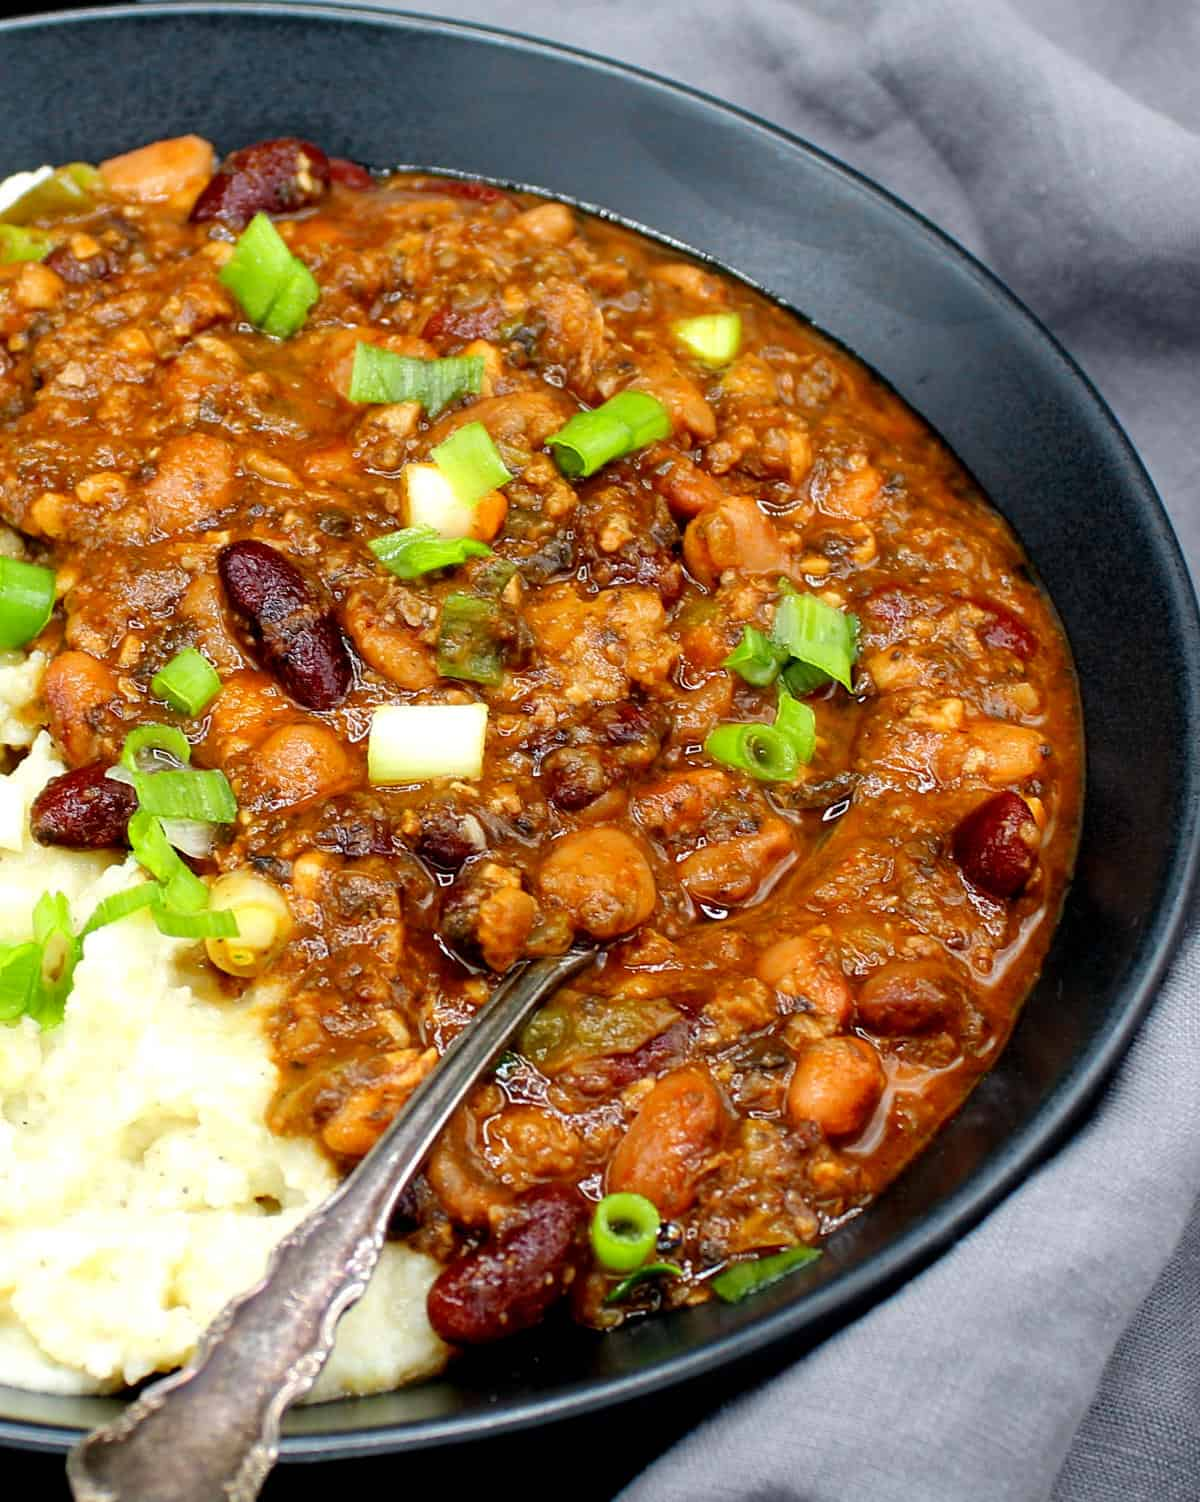 Vegan chili in a black bowl with creamy vegan mashed potatoes and scallions.